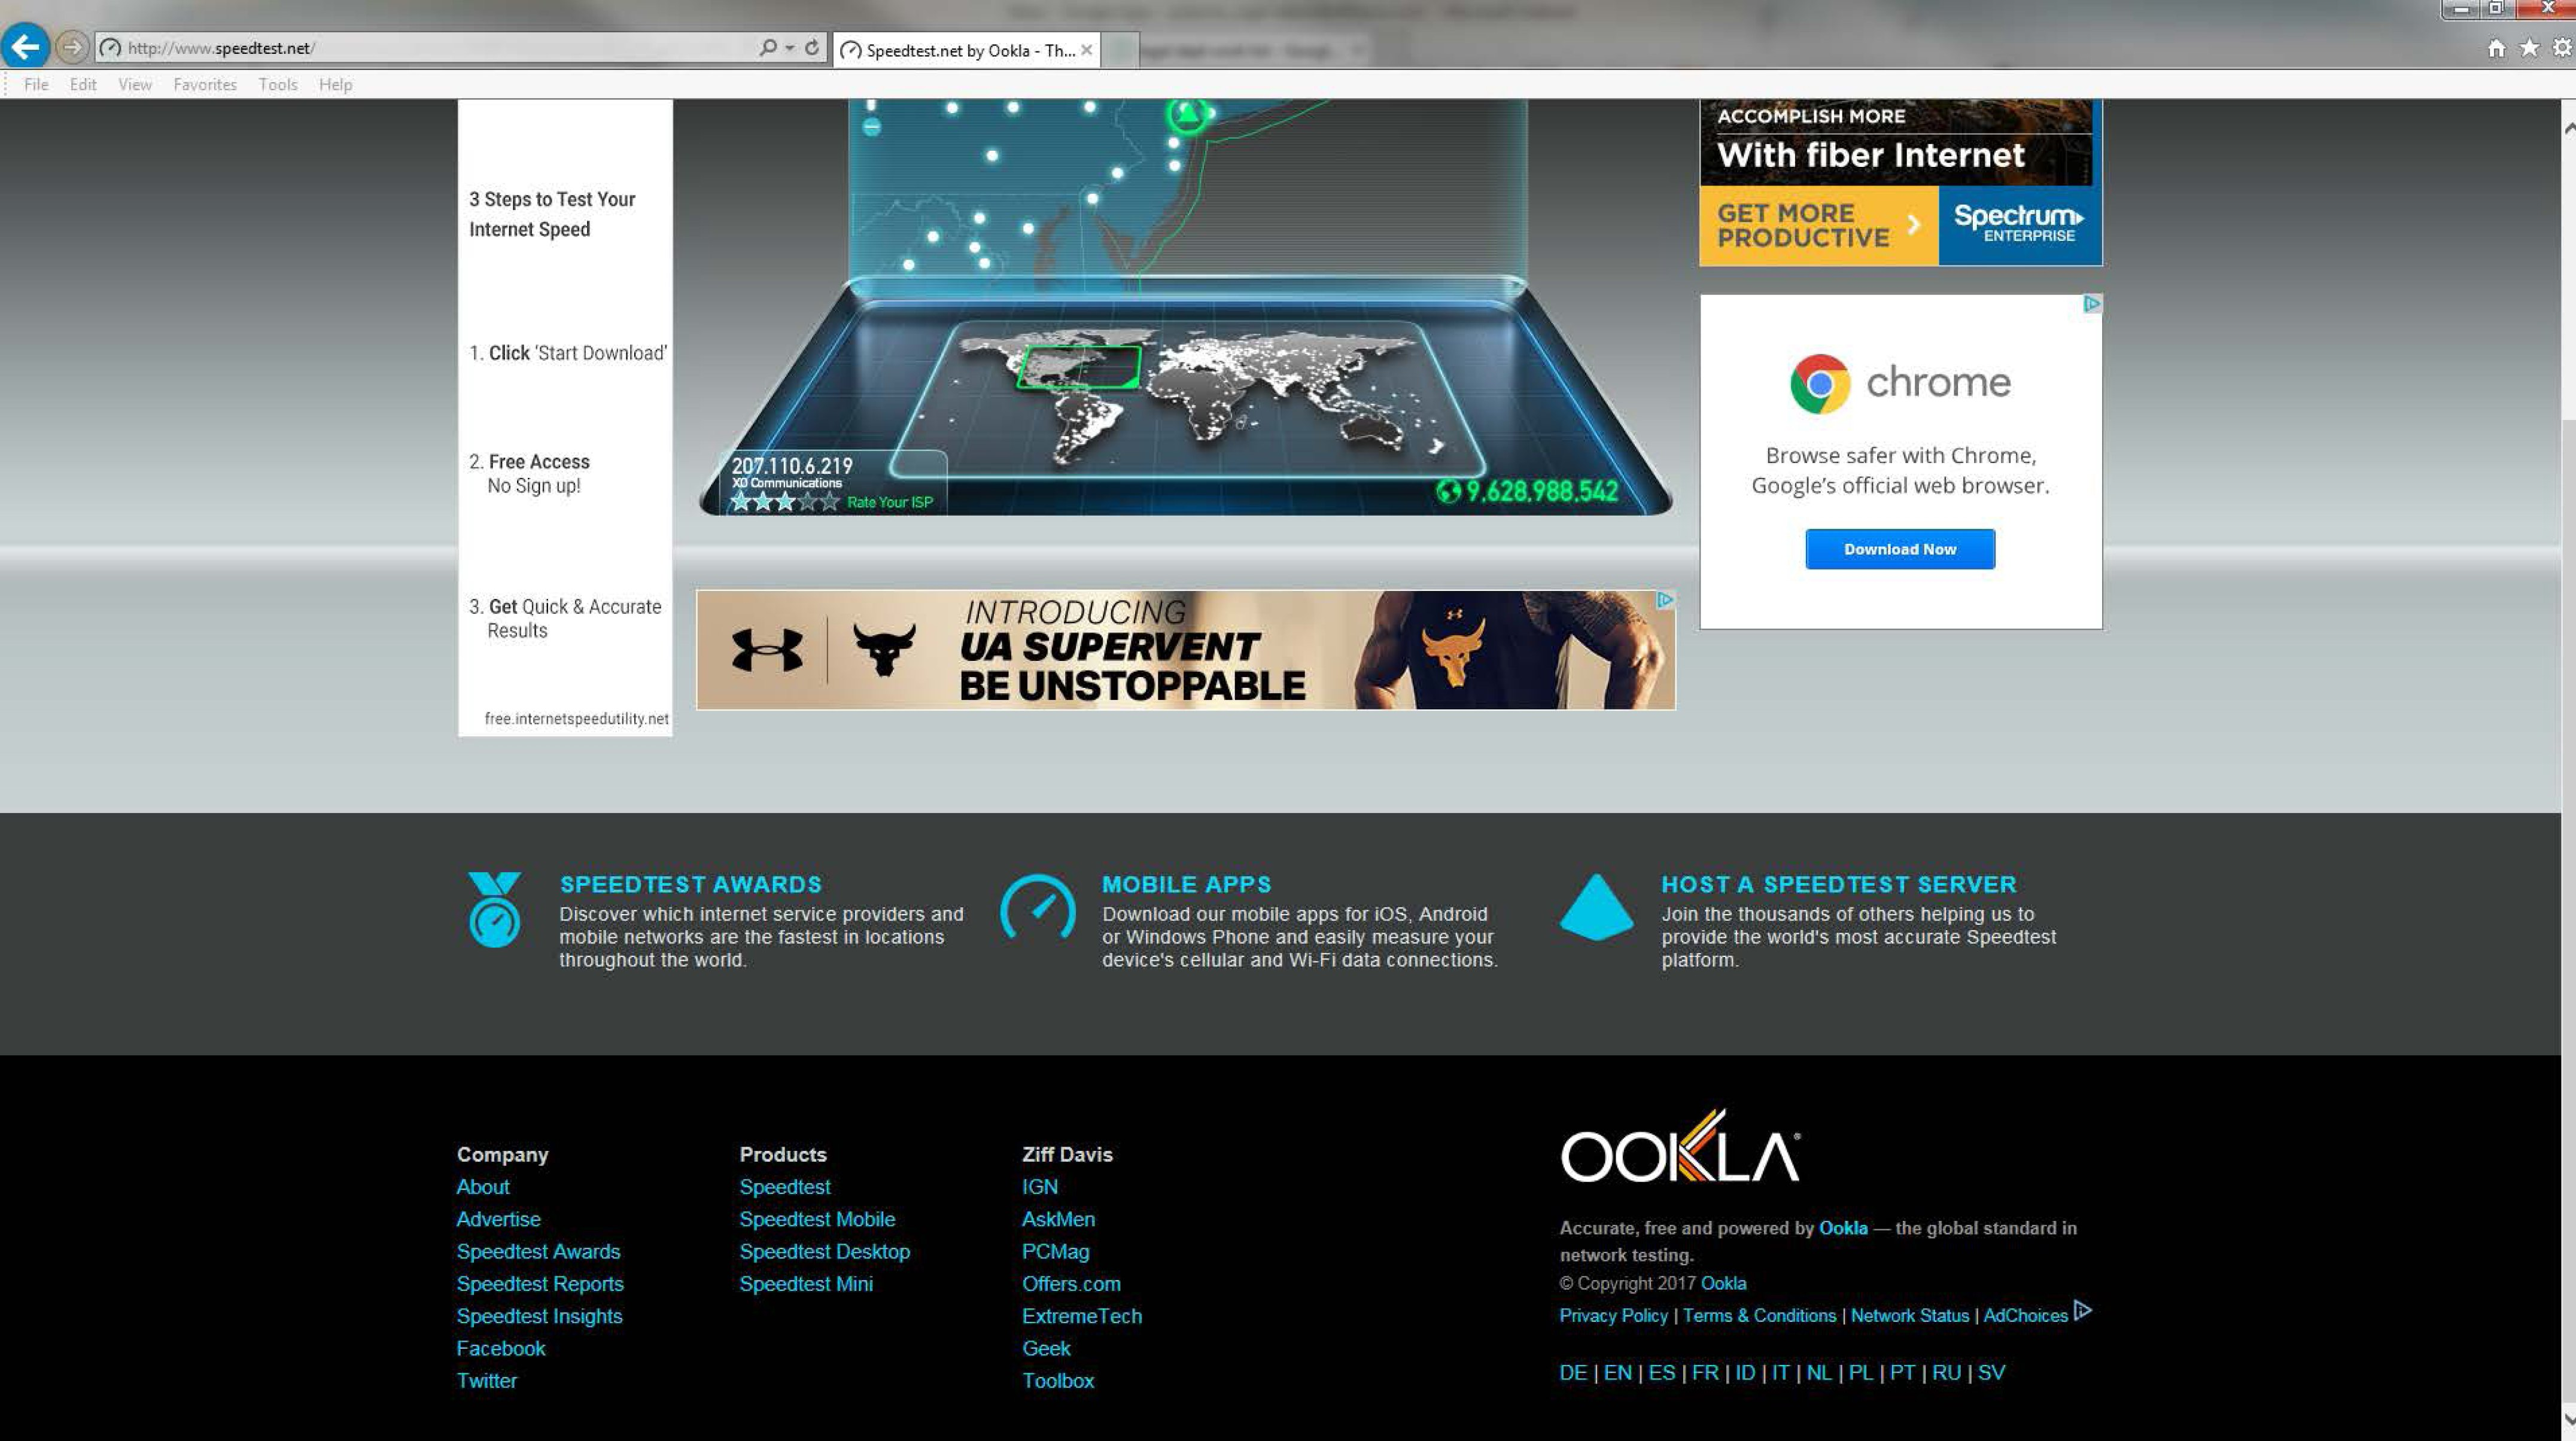 OOKLA Details, a Report by Trademark Bank | Calendar Your Mark